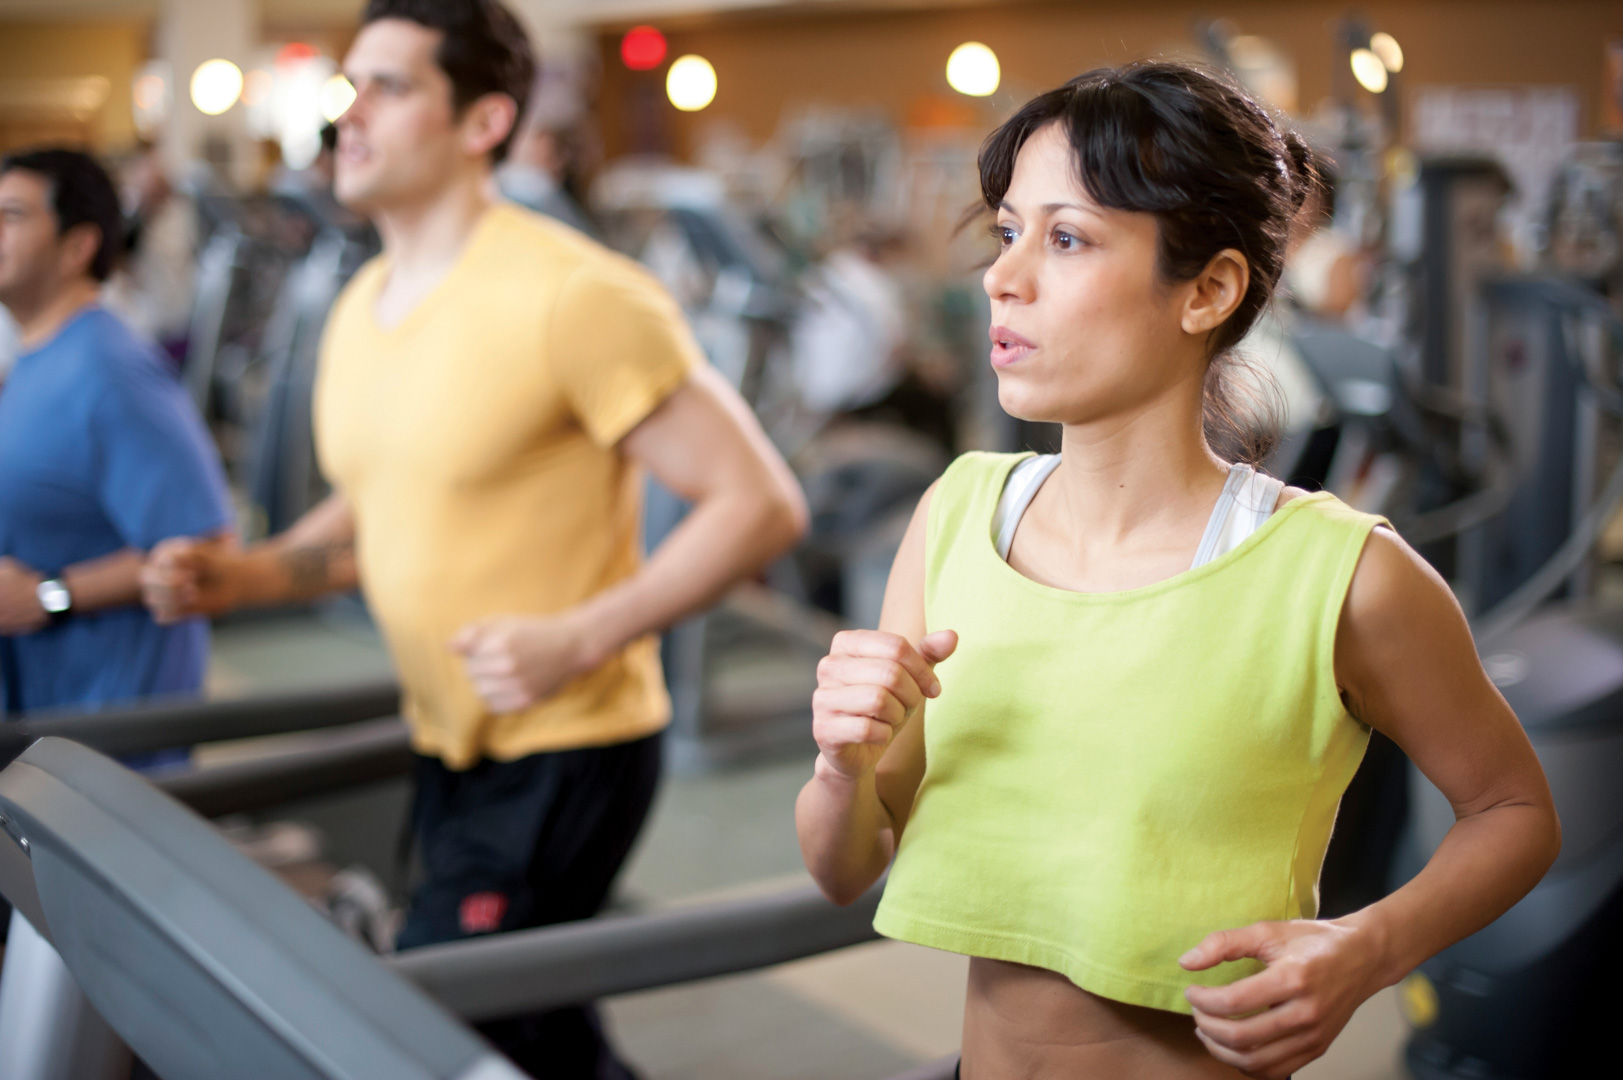 woman running on treadmill with man in background